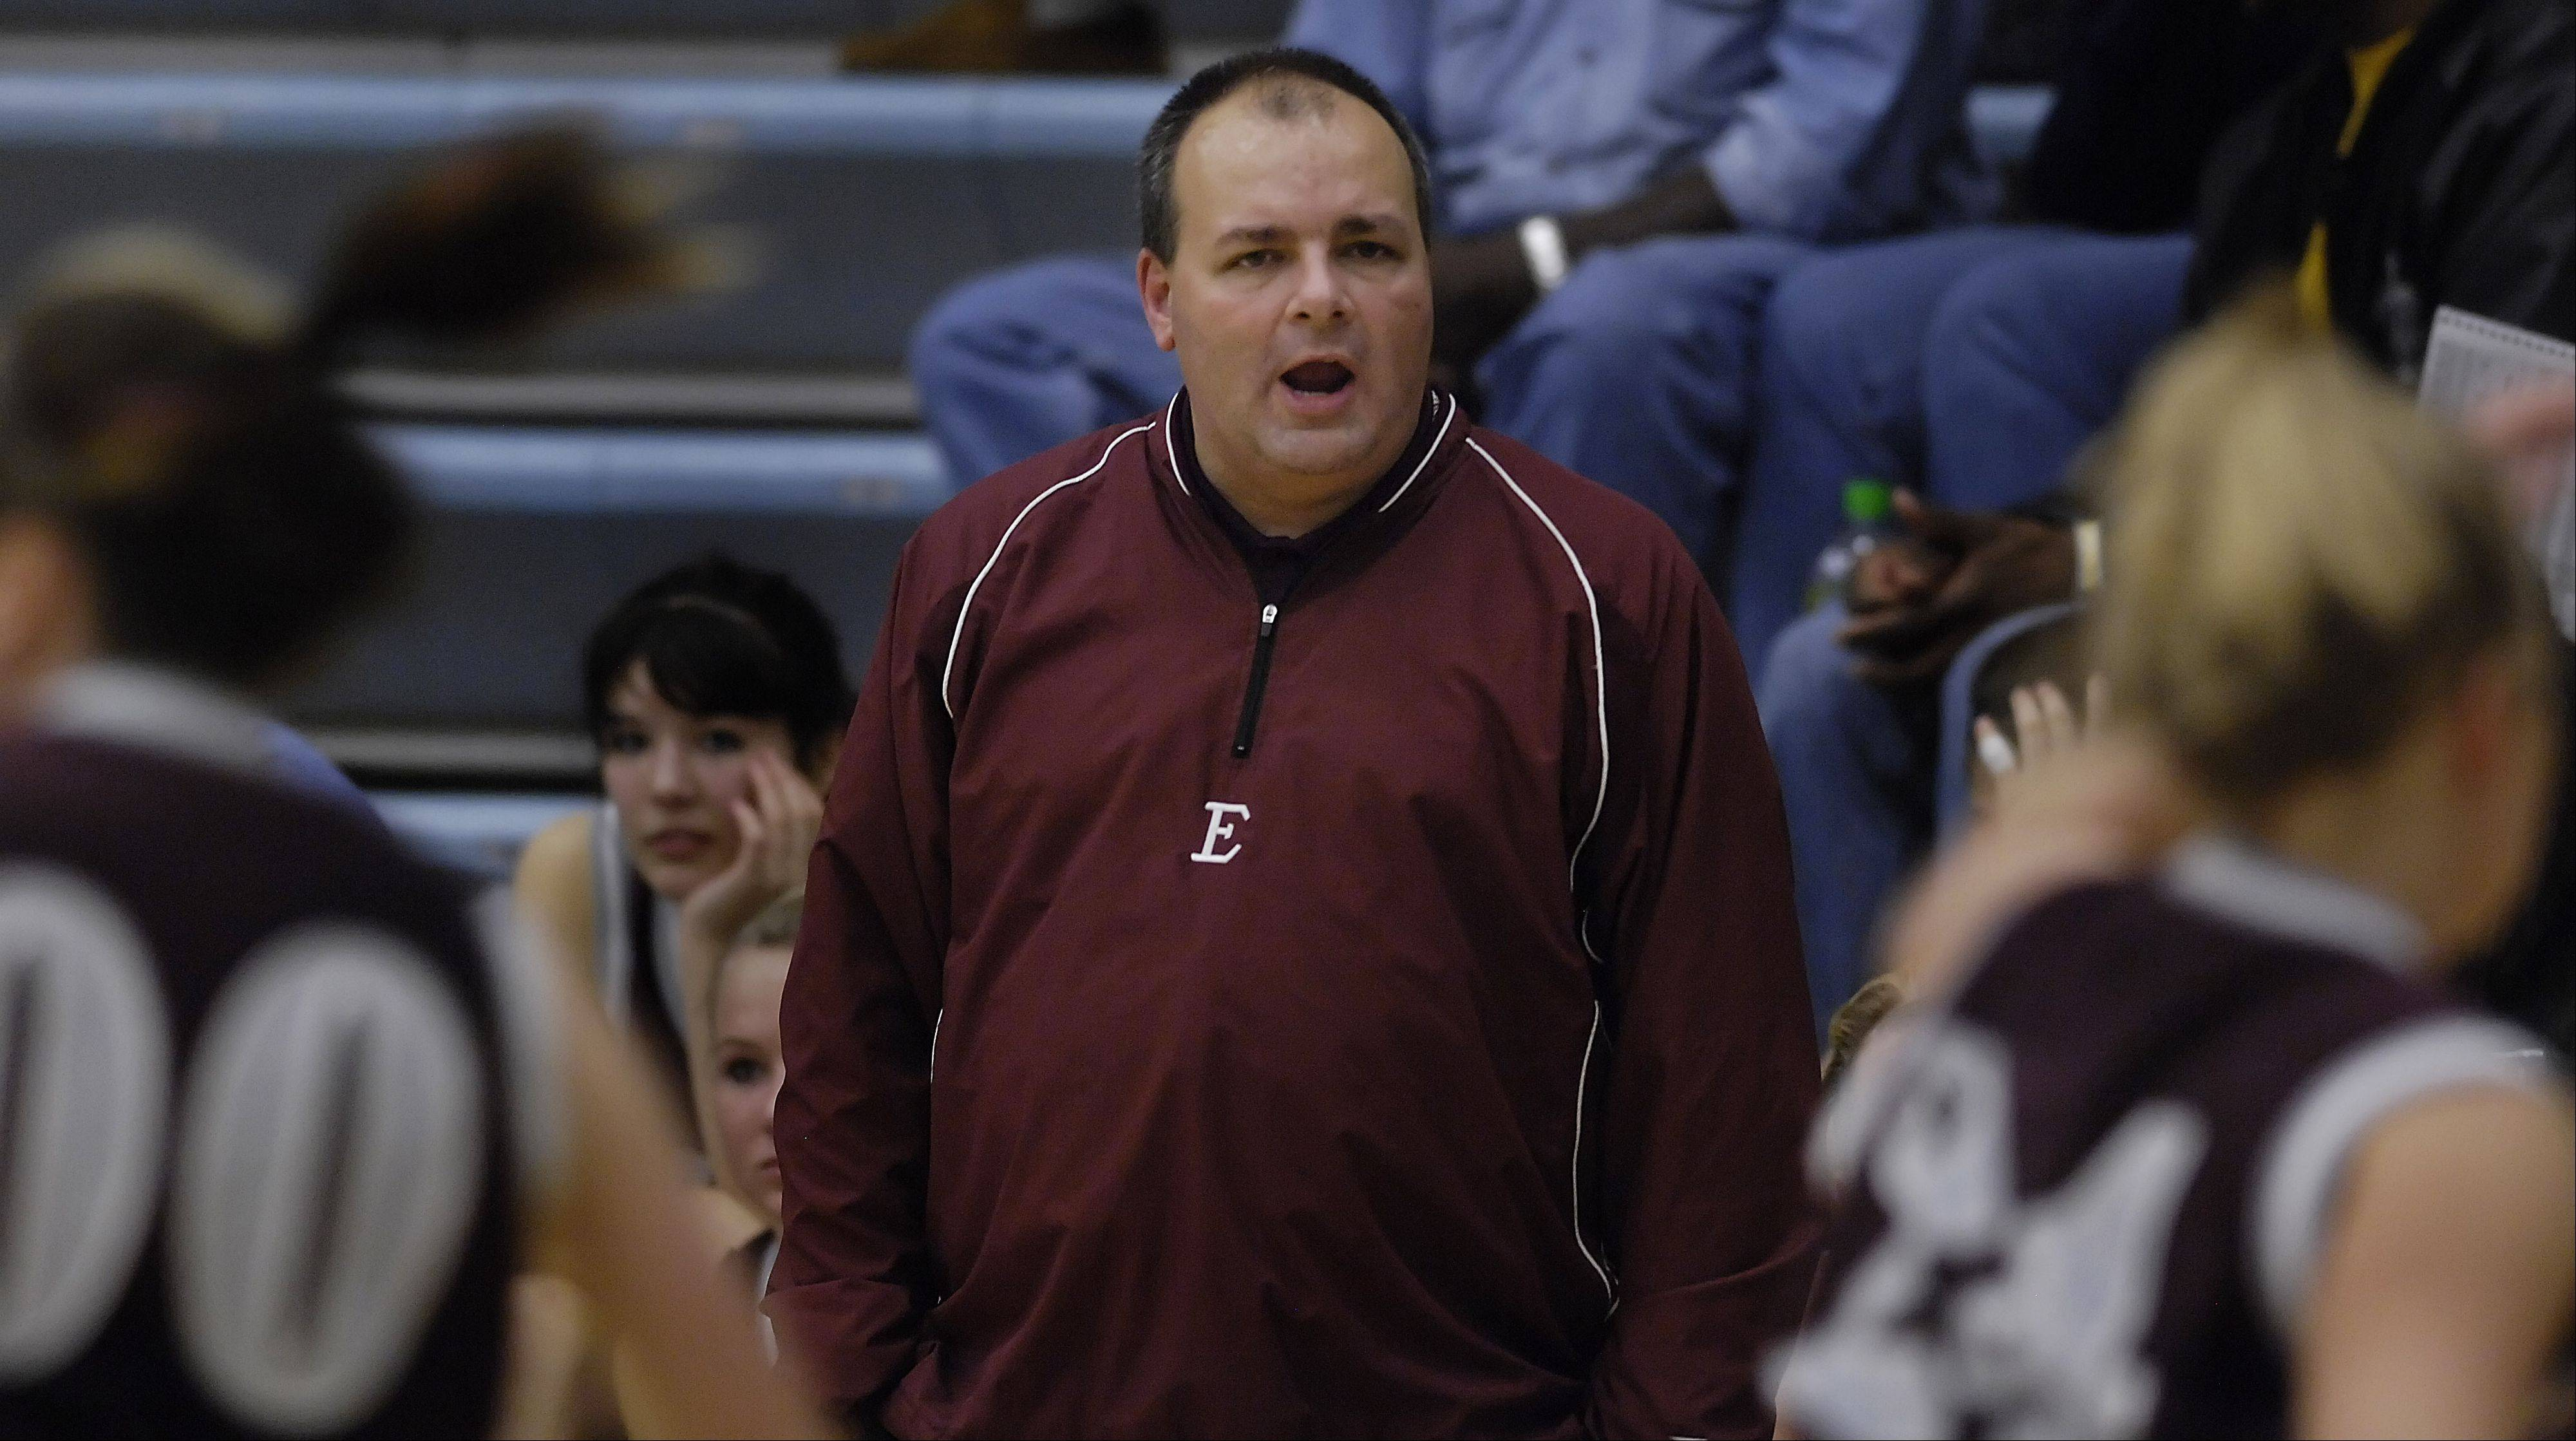 Elgin girls basketball coach Dr. Nick Bumbales is hoping his Maroons can gain some confidence this week at the Elgin Academy Thanksgiving tournament.